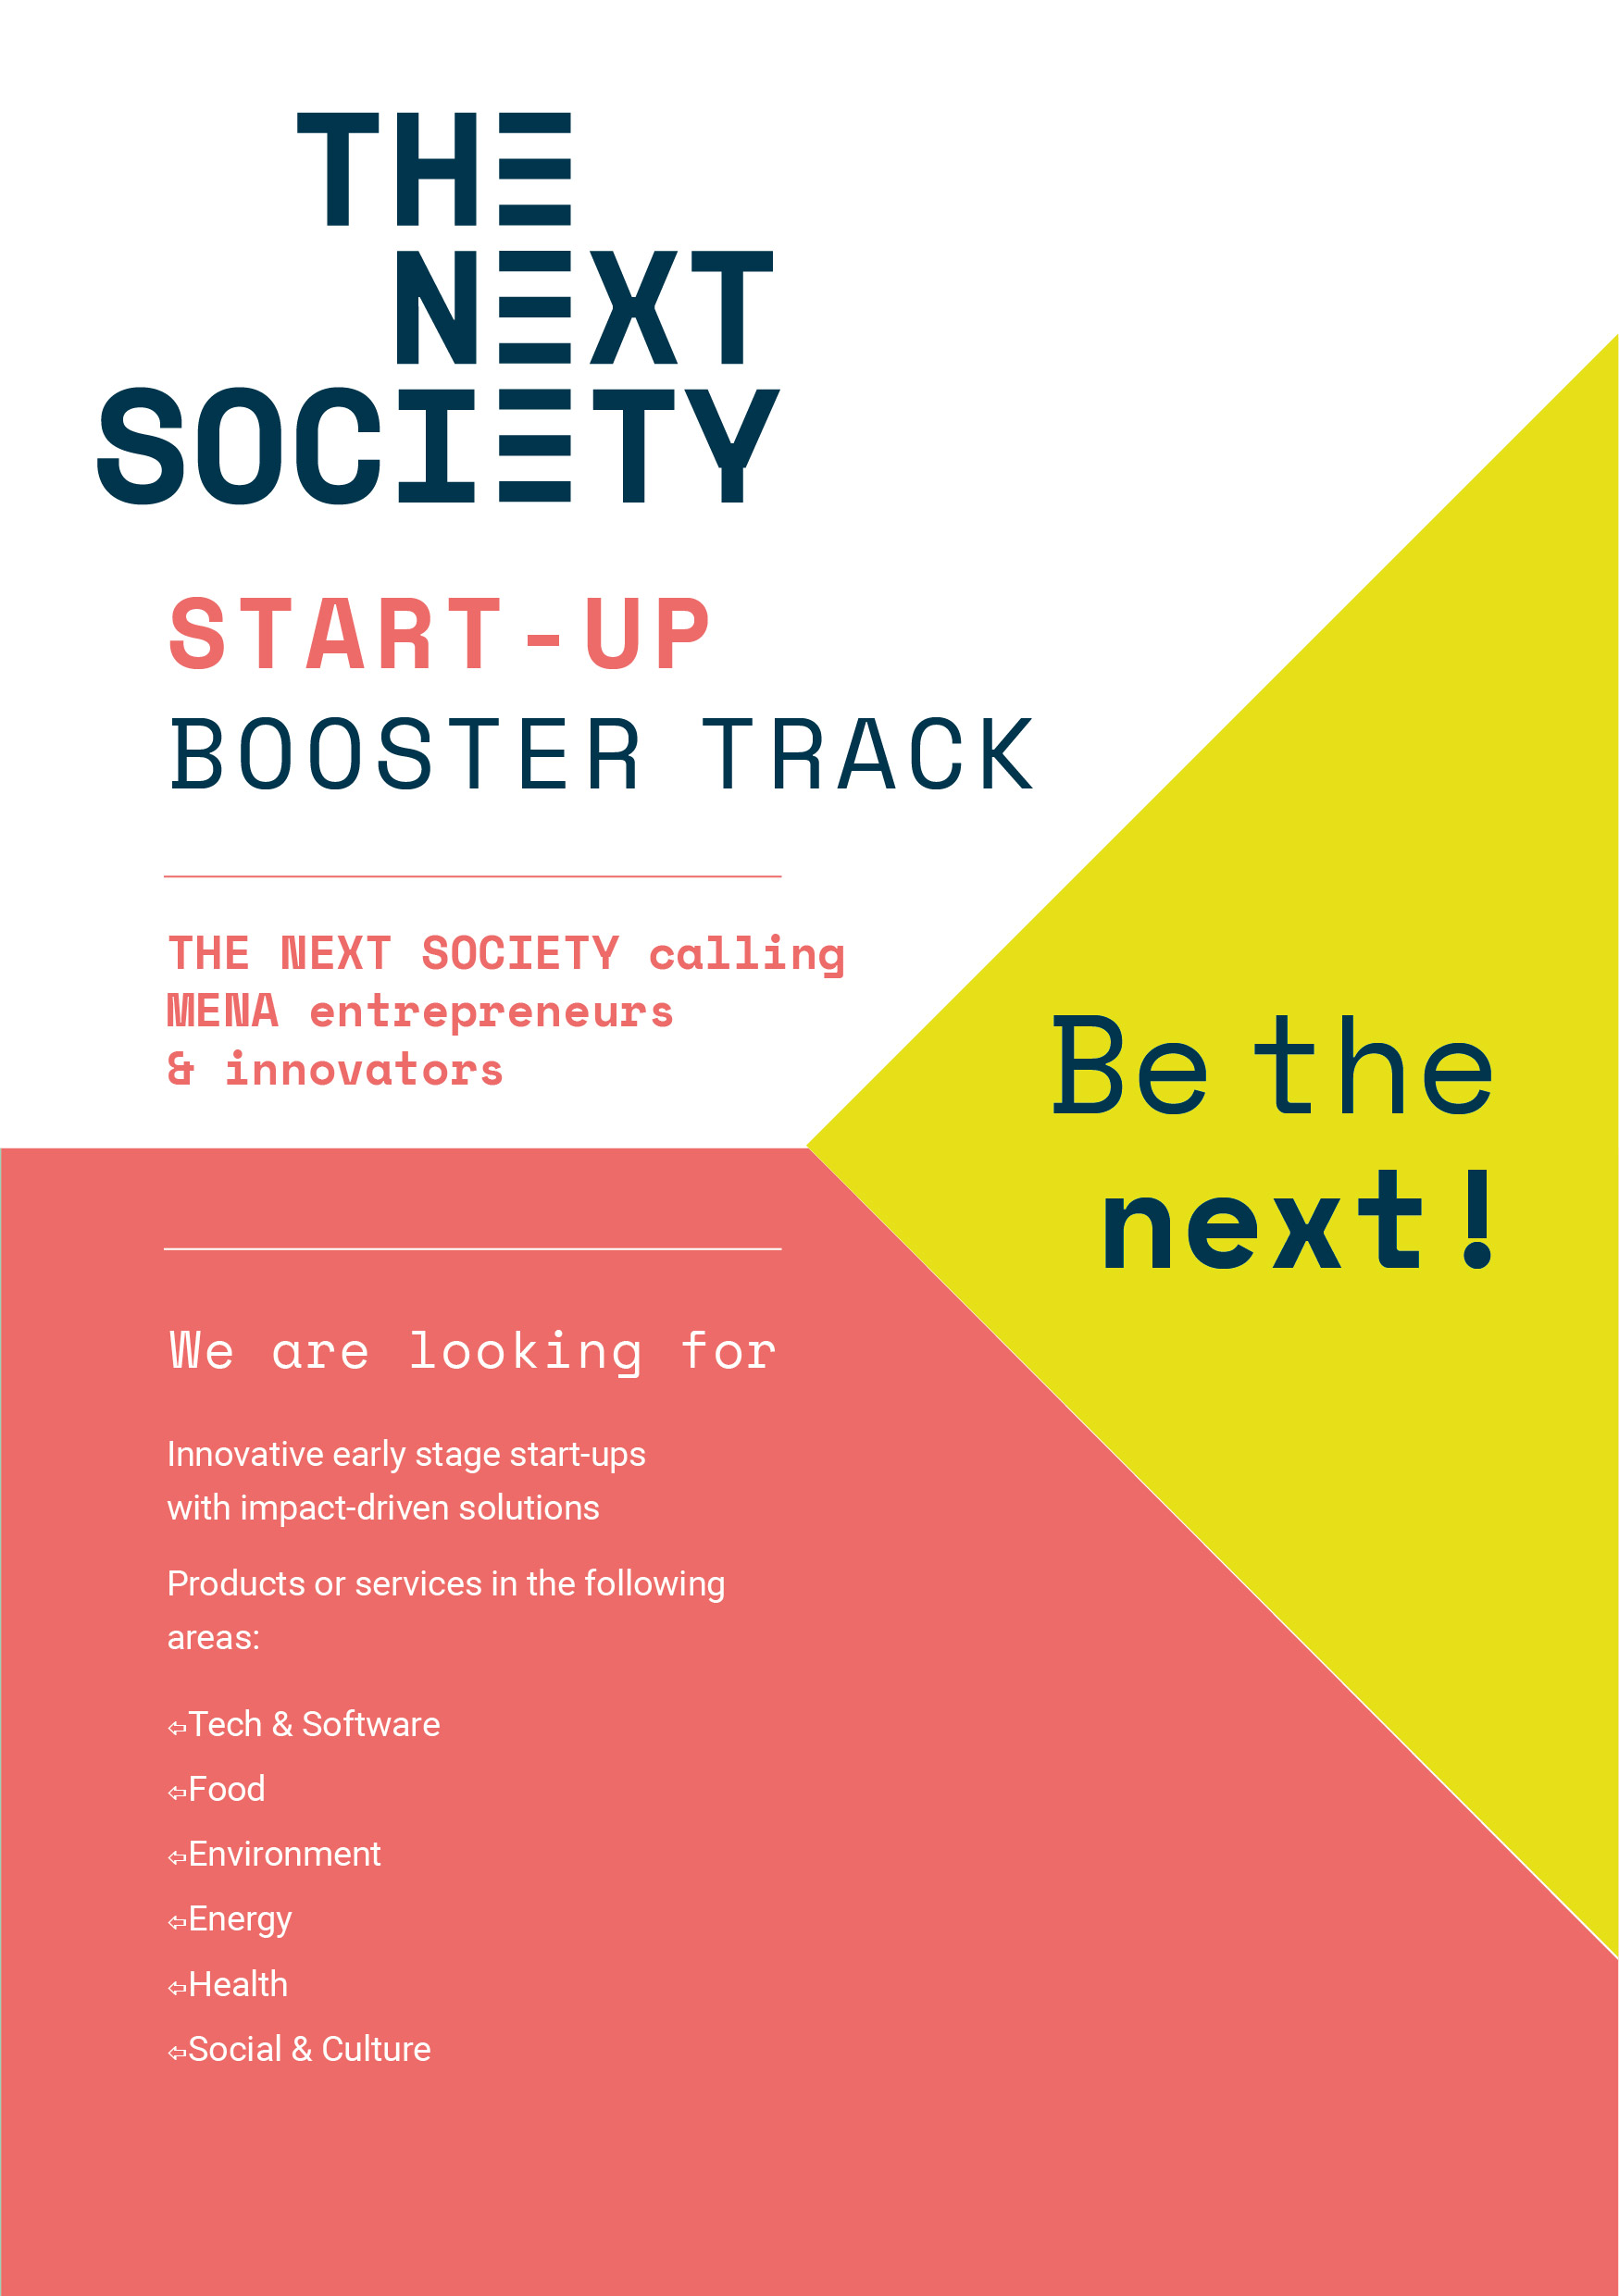 Start-up Booster Track